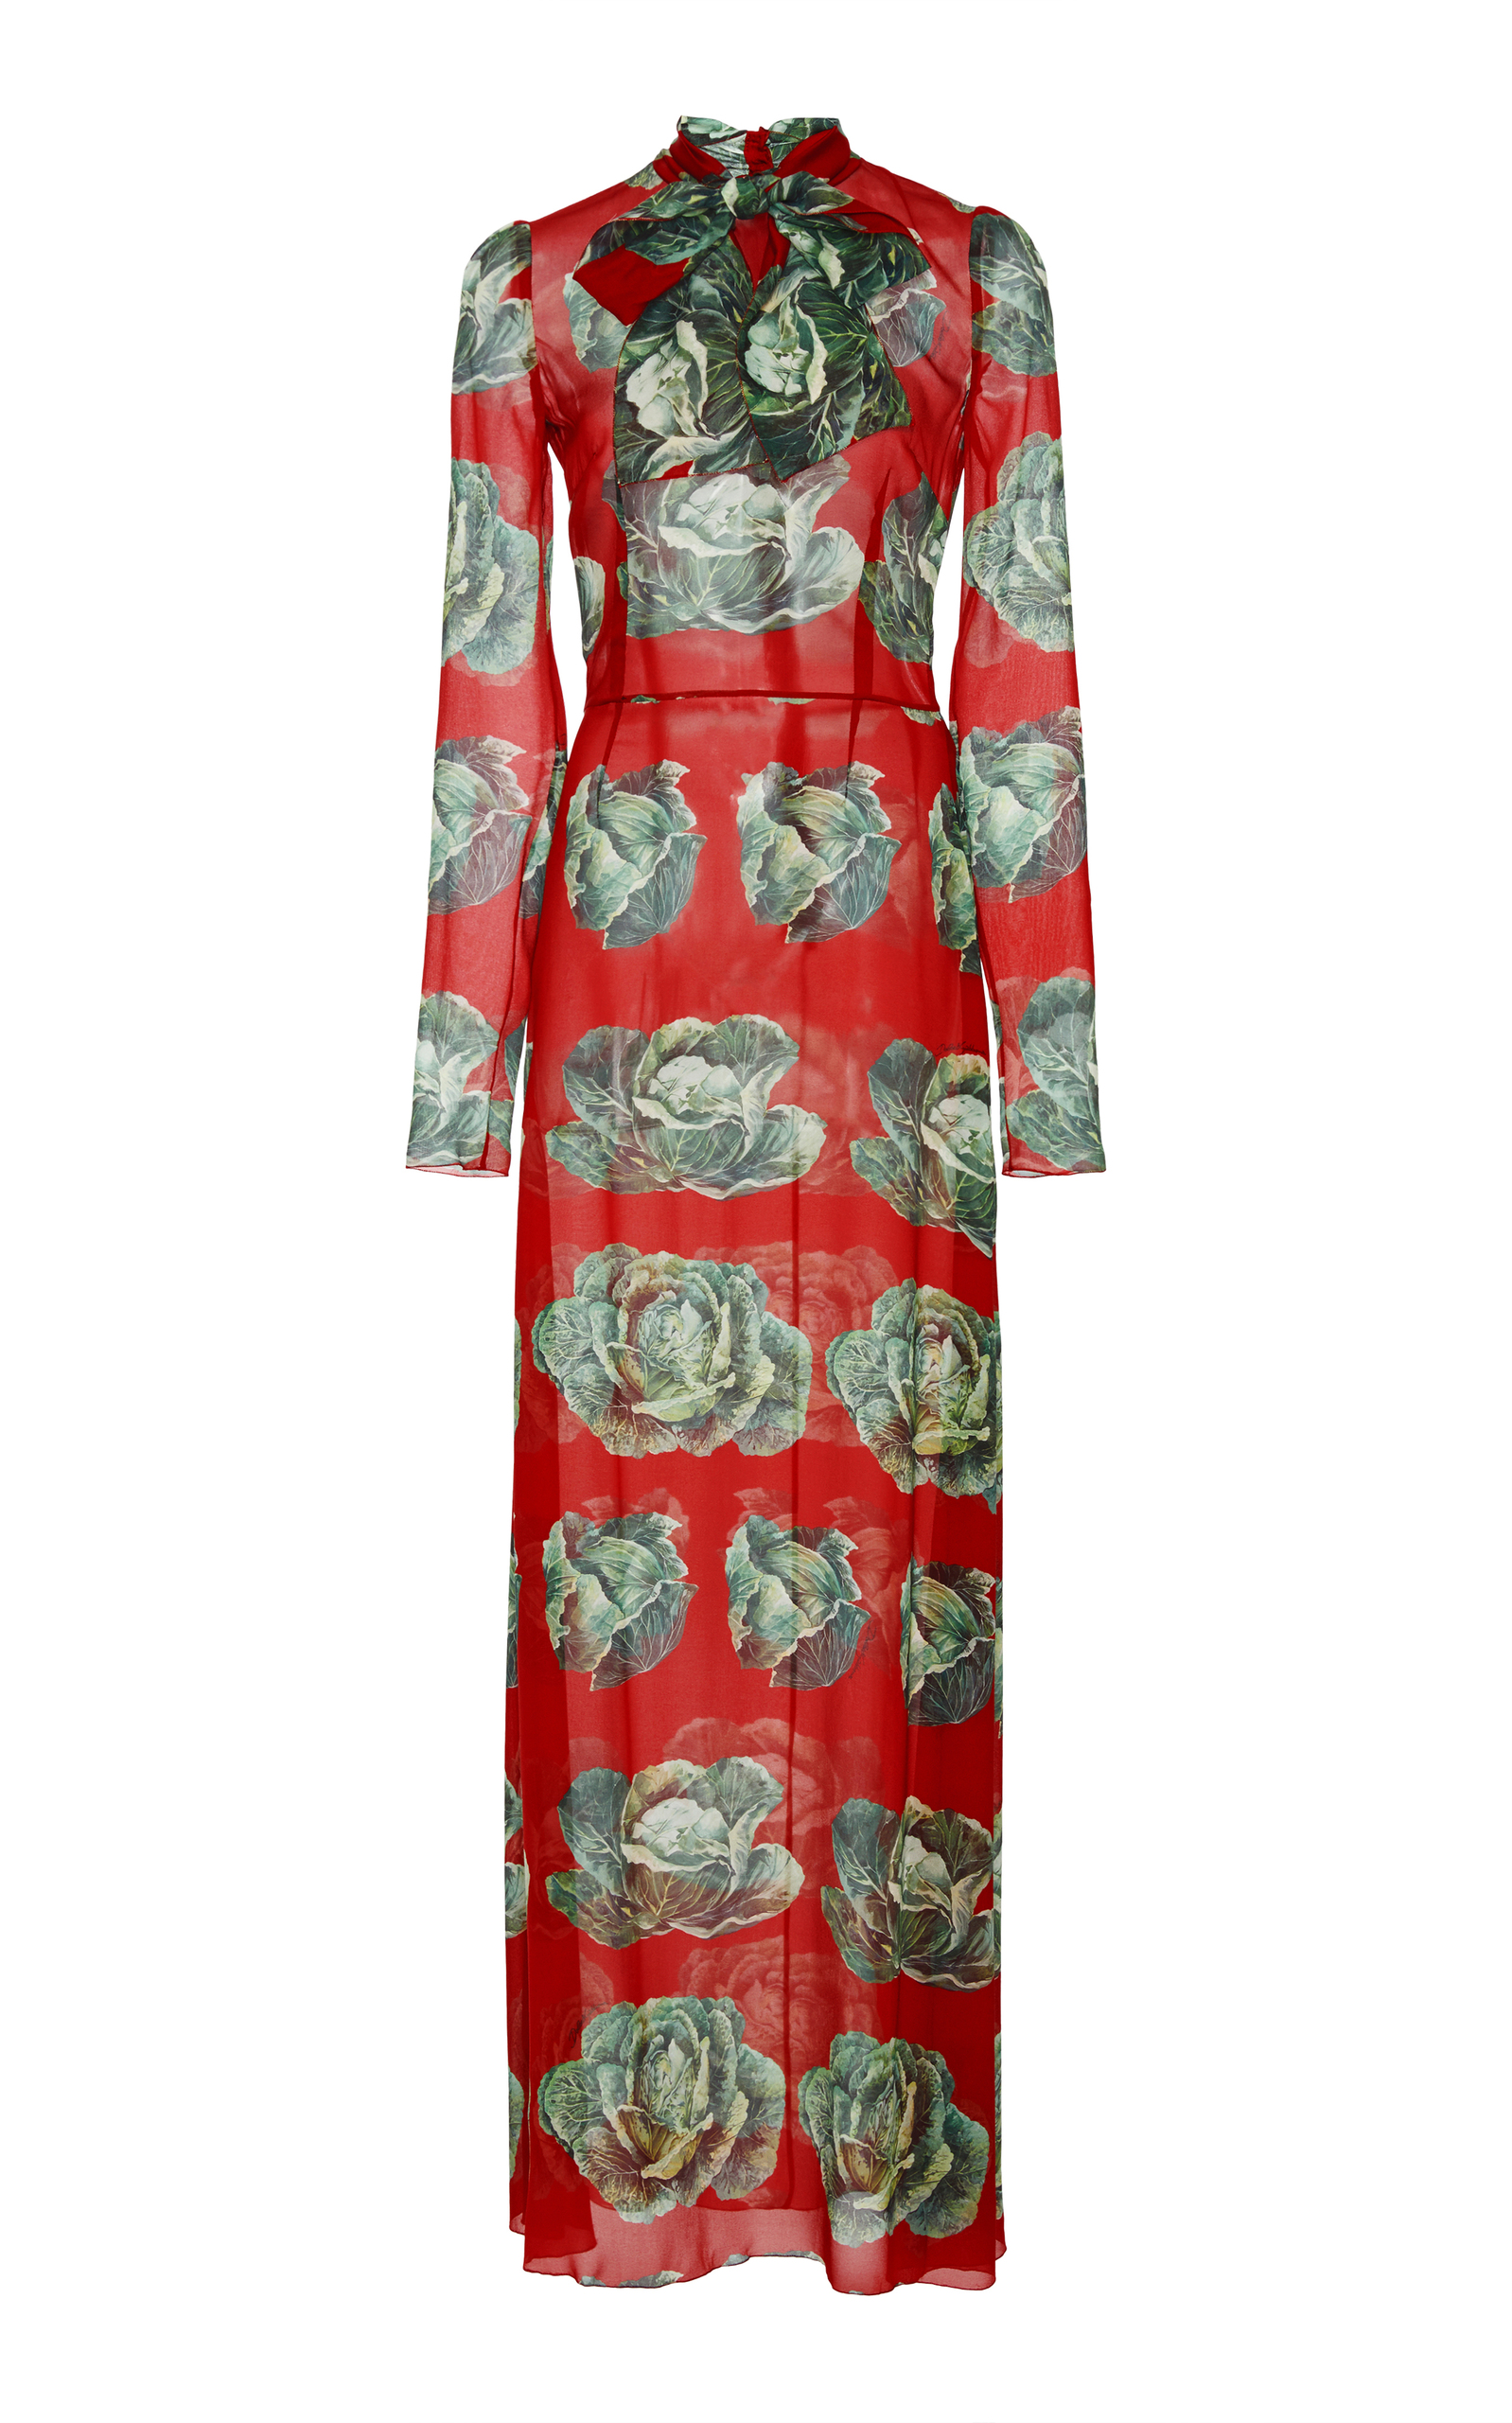 Dolce & Gabbana Red Cabbage Print Gown/Maxi Dress